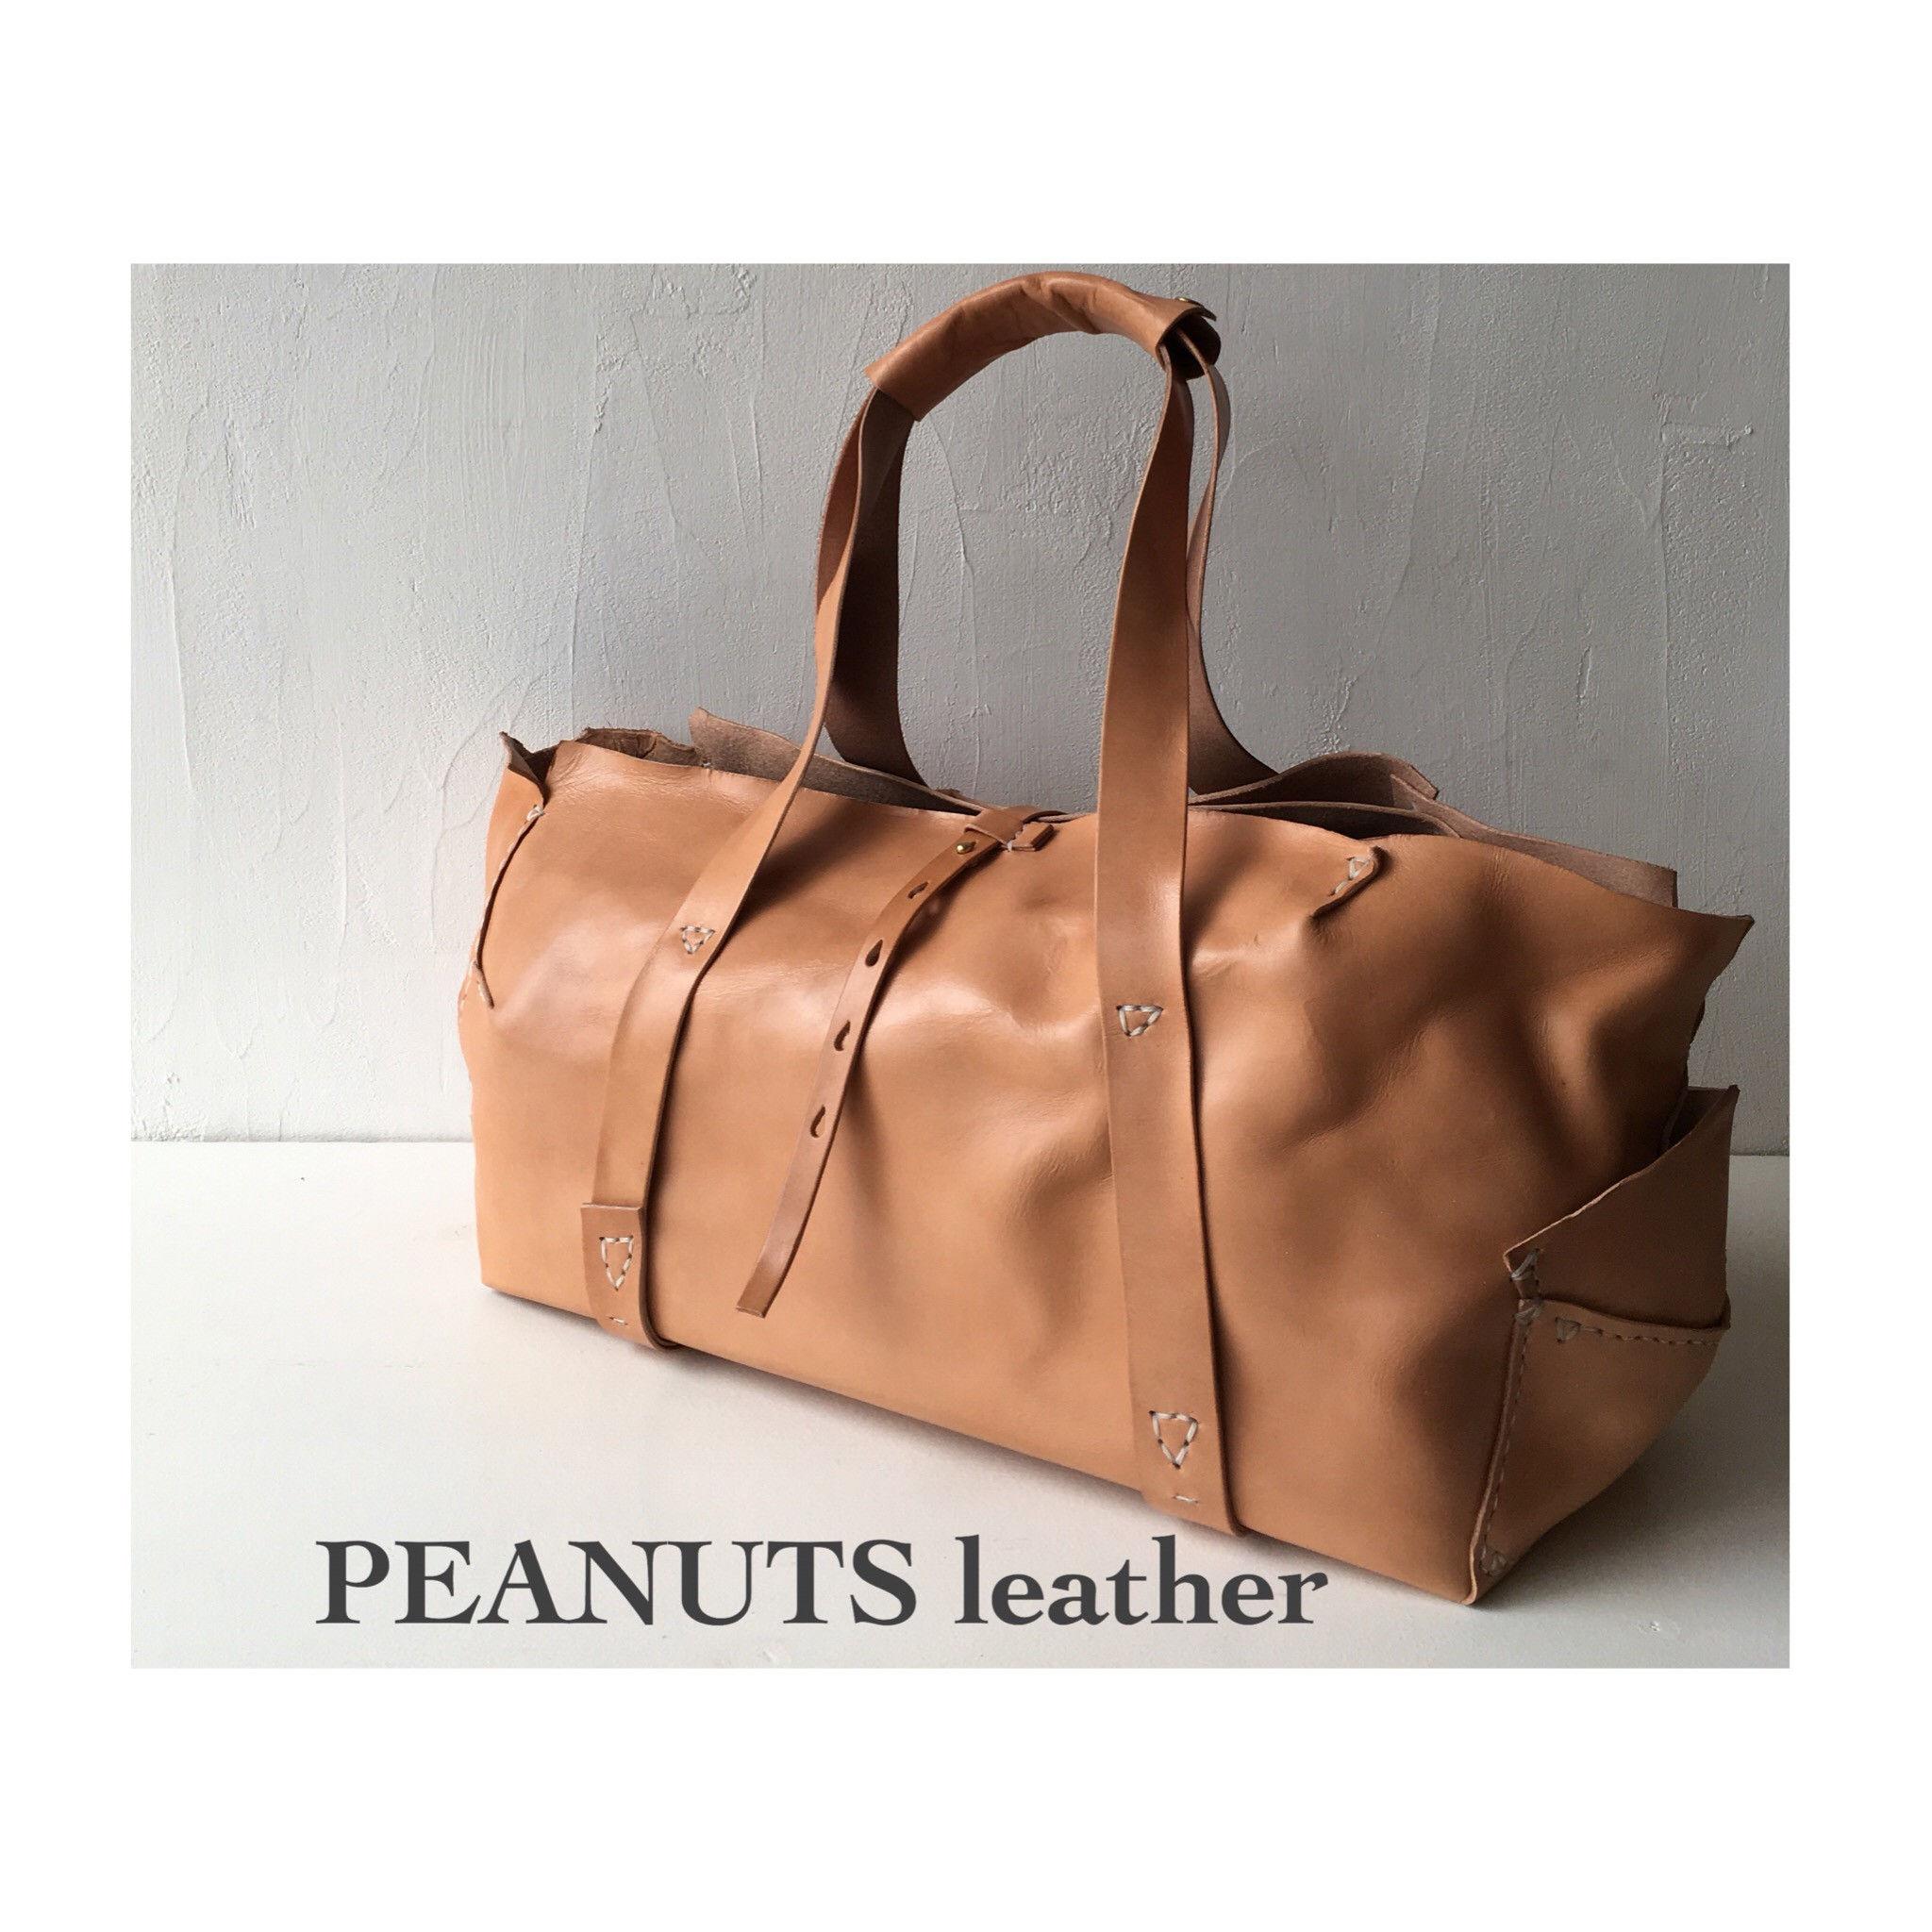 peanuts leather